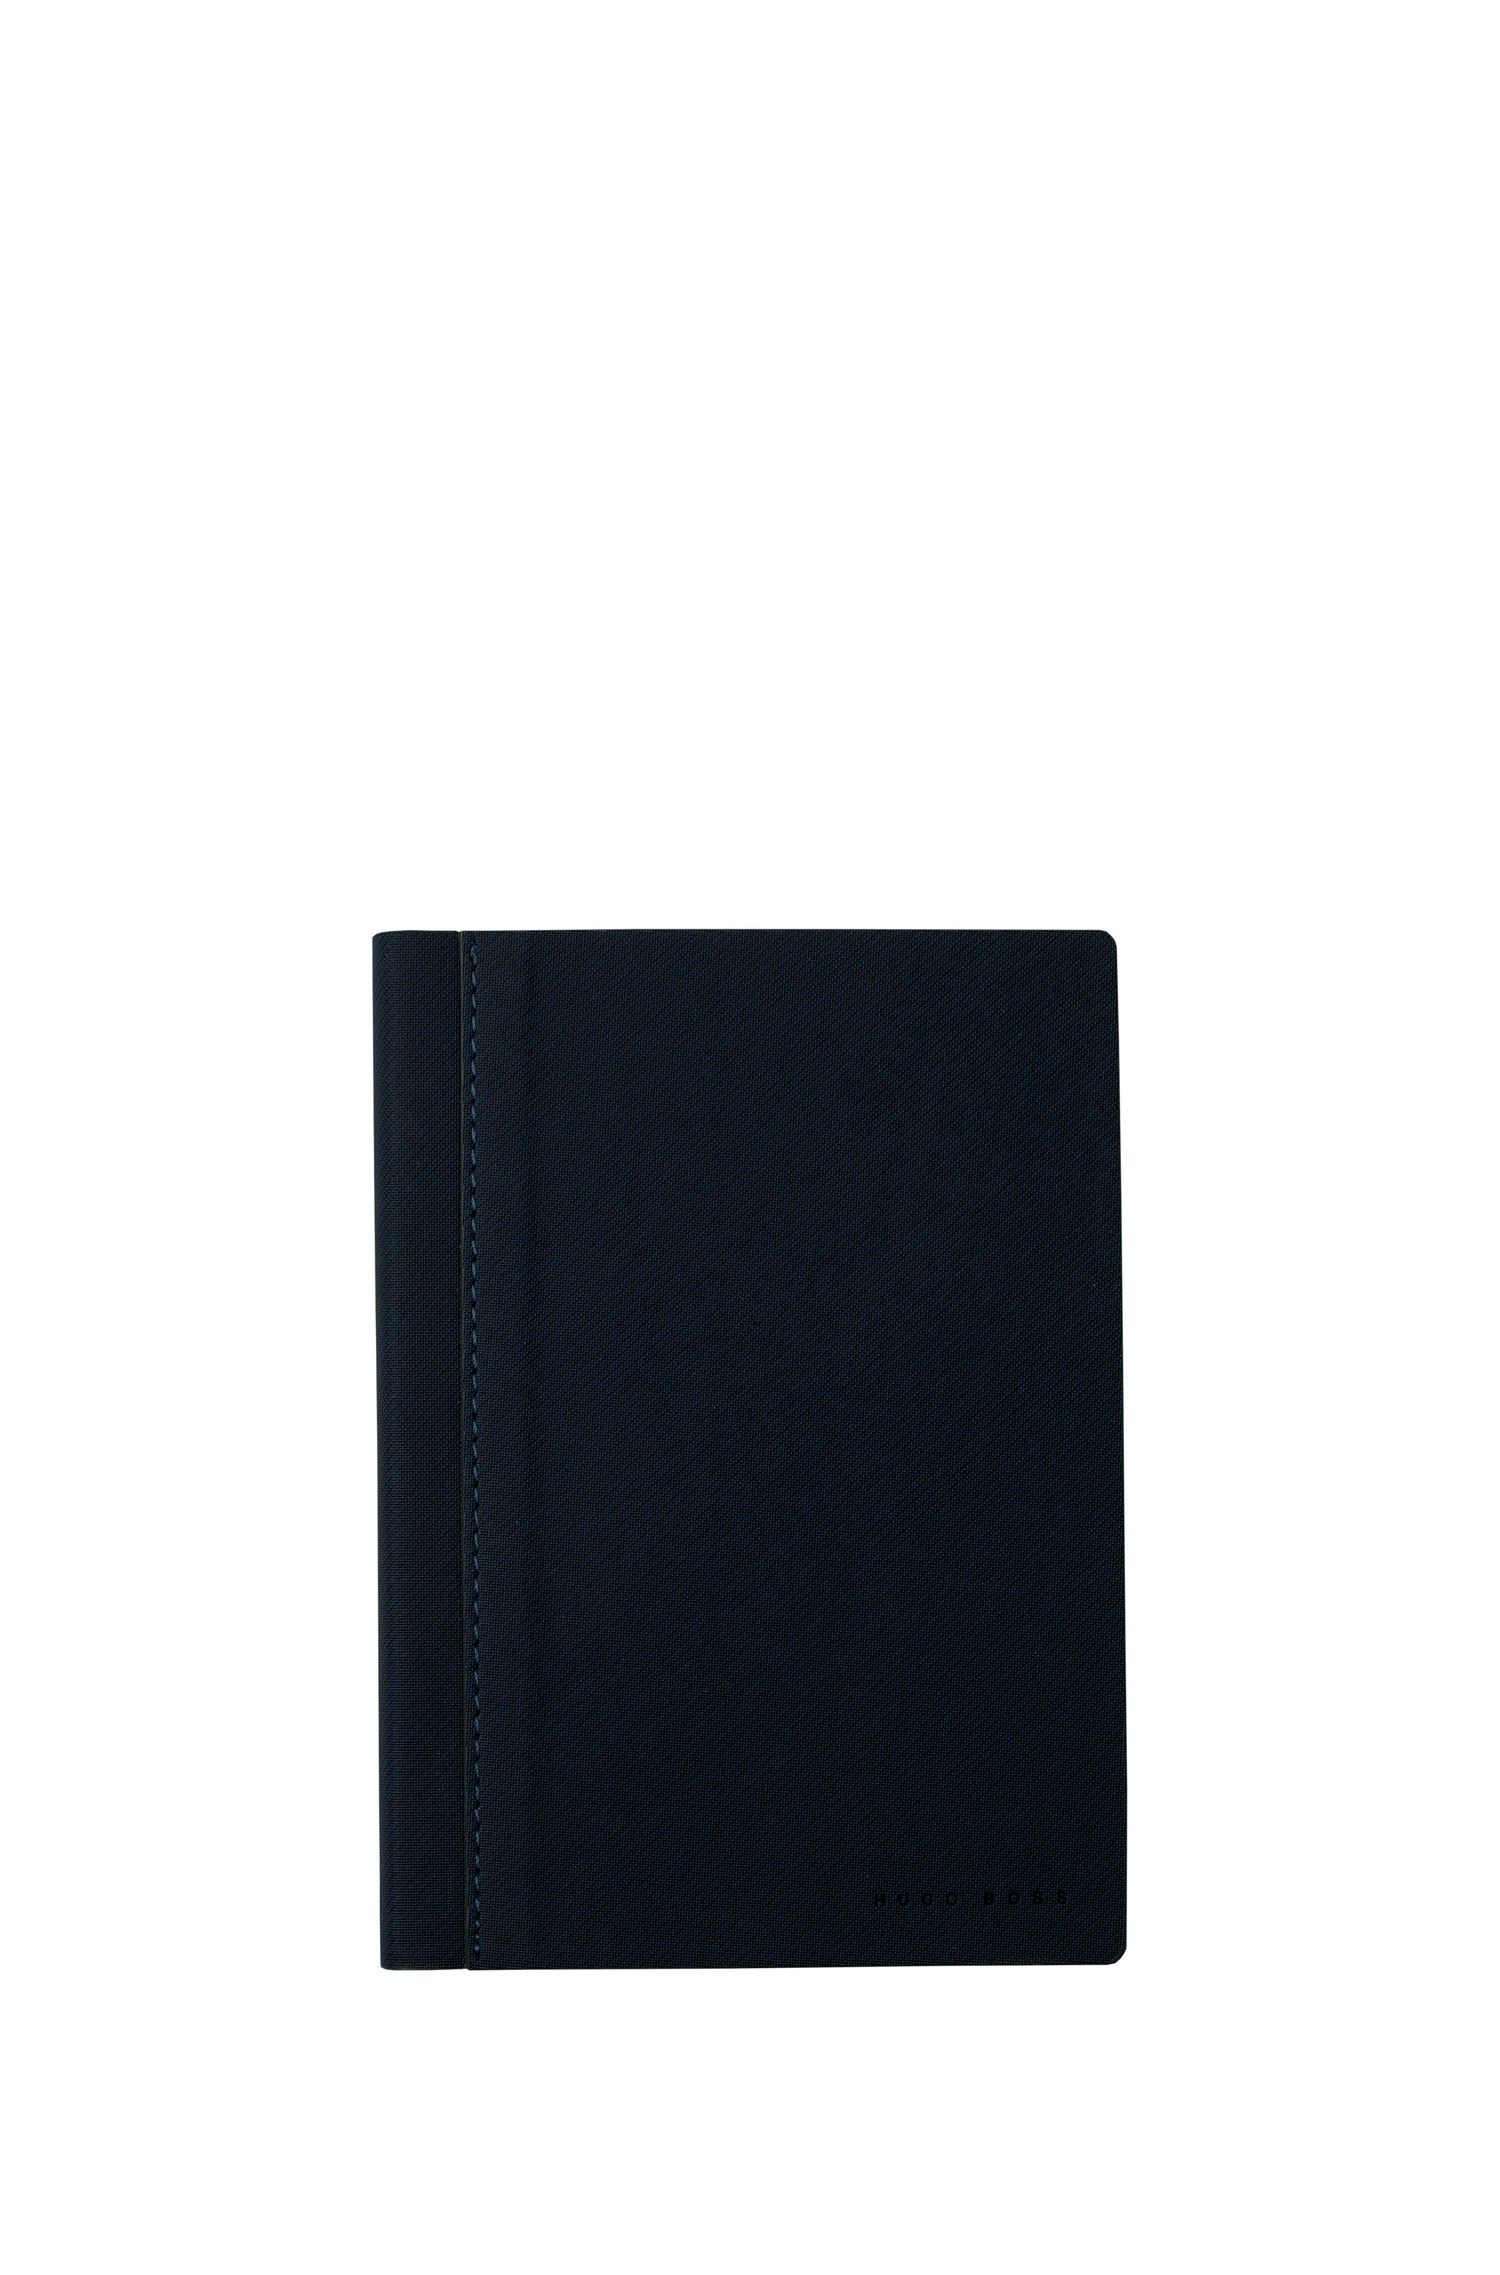 A6 notebook in dark-blue textured fabric